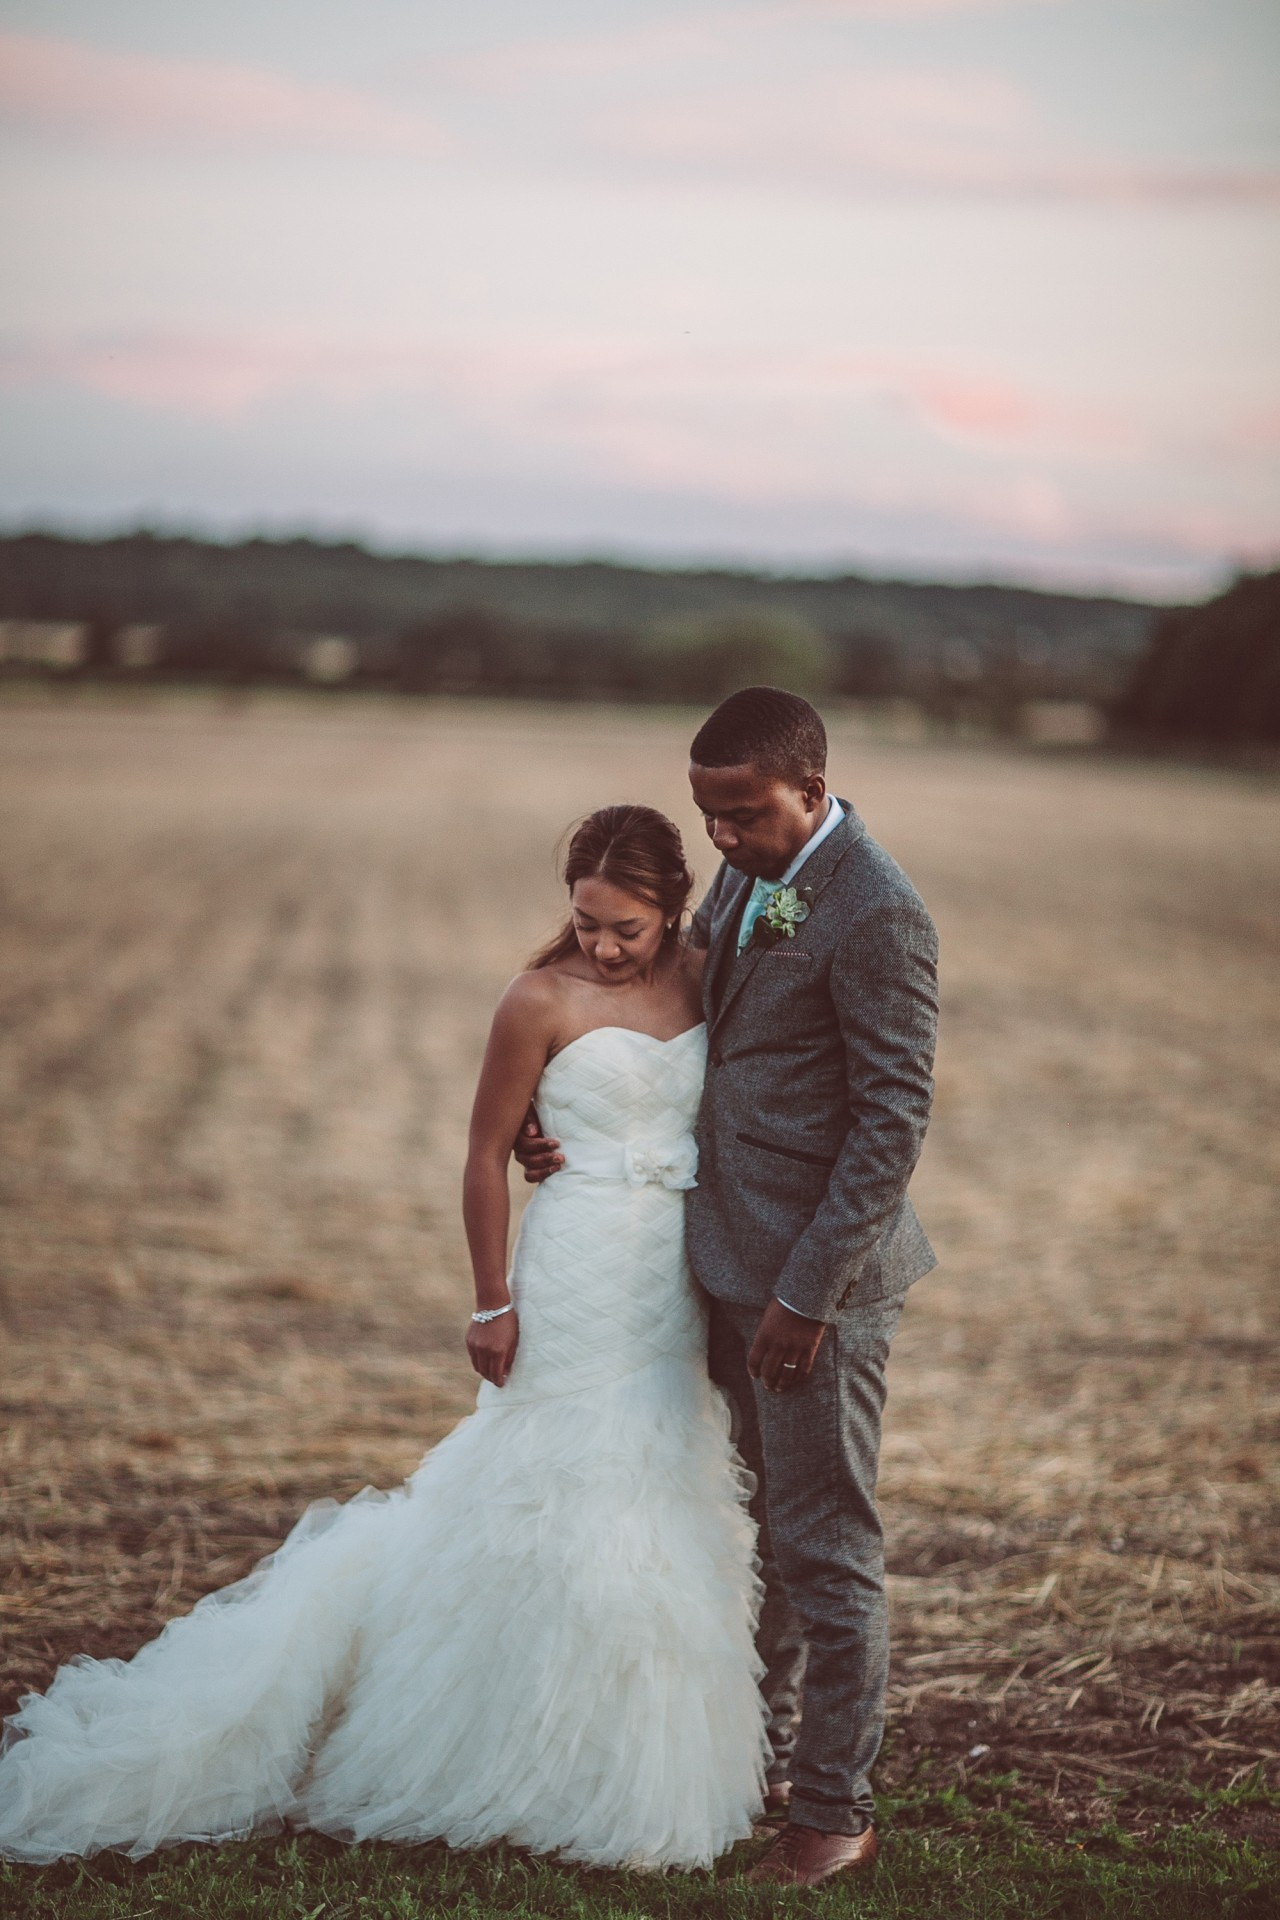 Rachelle_Tonderai_Romantic_Rustic-Wedding_037